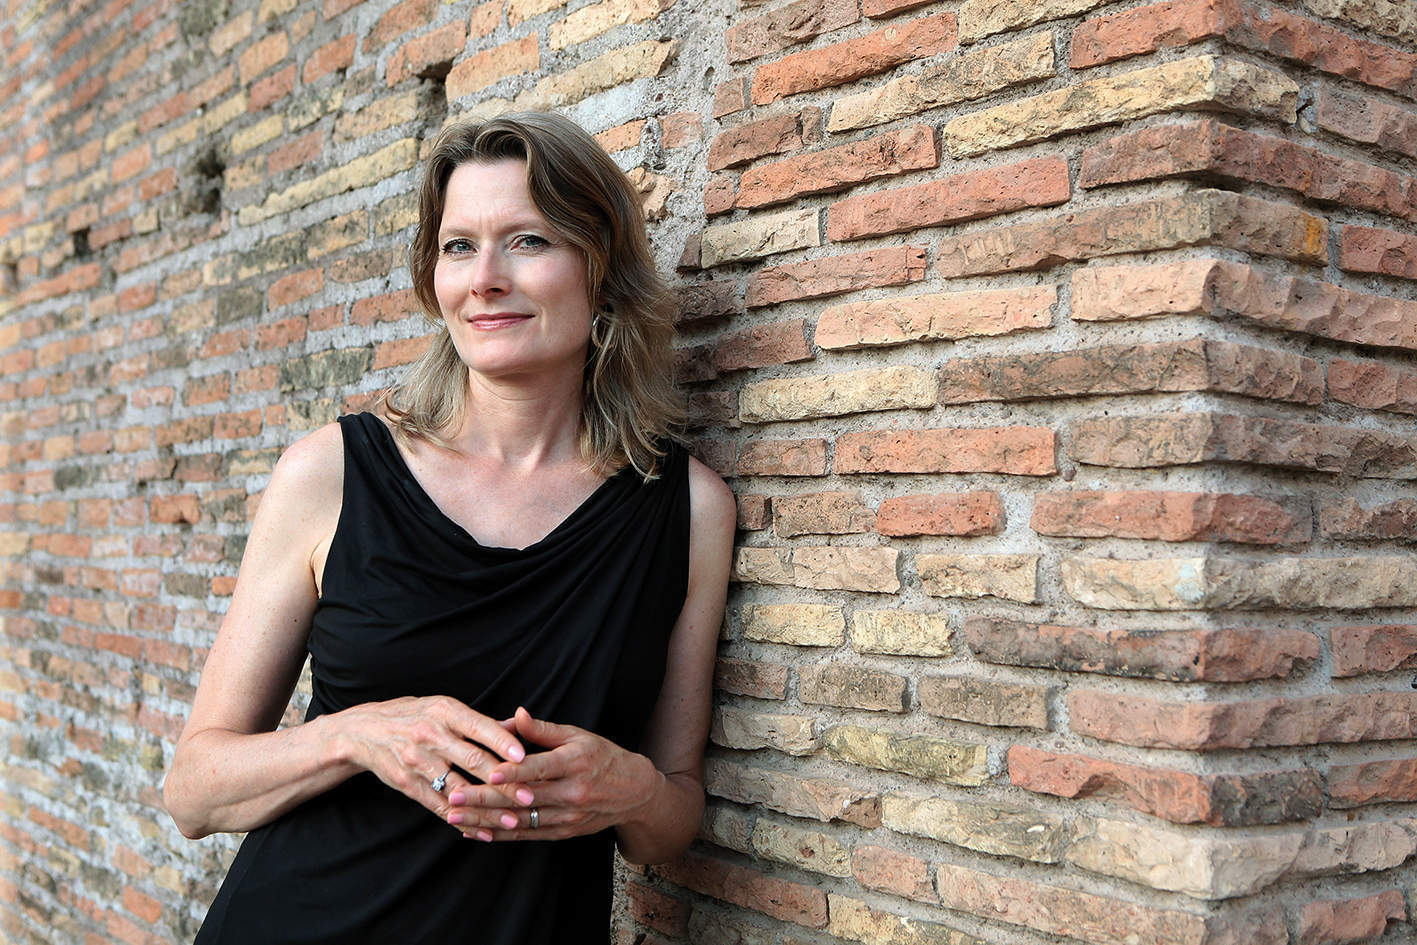 In much of Jennifer Egan's Manhattan Beach, feelings come second place to facts